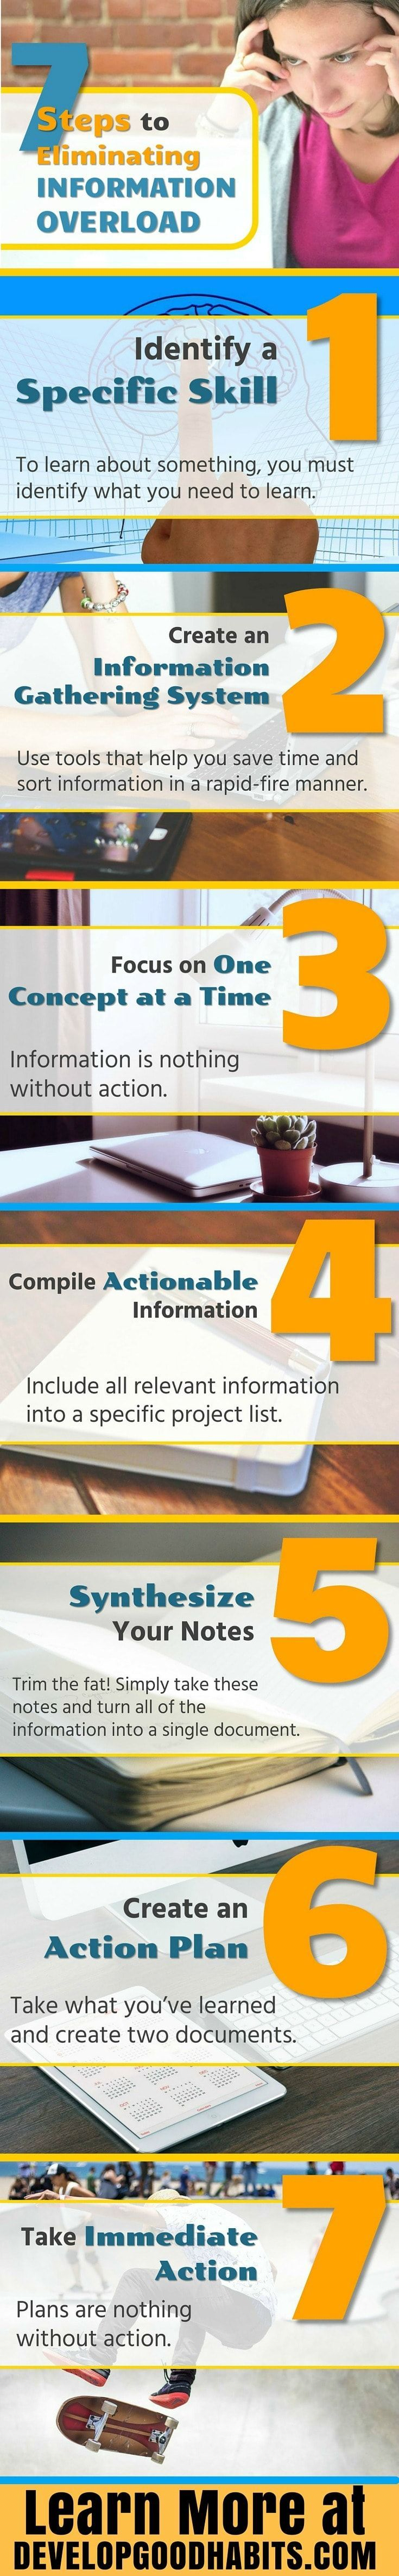 Dealing with information overload. See more details on the seven steps for dealing with too much information (TMI) and how this can help you increase productivity. Excerpt from: Daily Entreprenuer book: http://www.developgoodhabits.com/DE-ebook